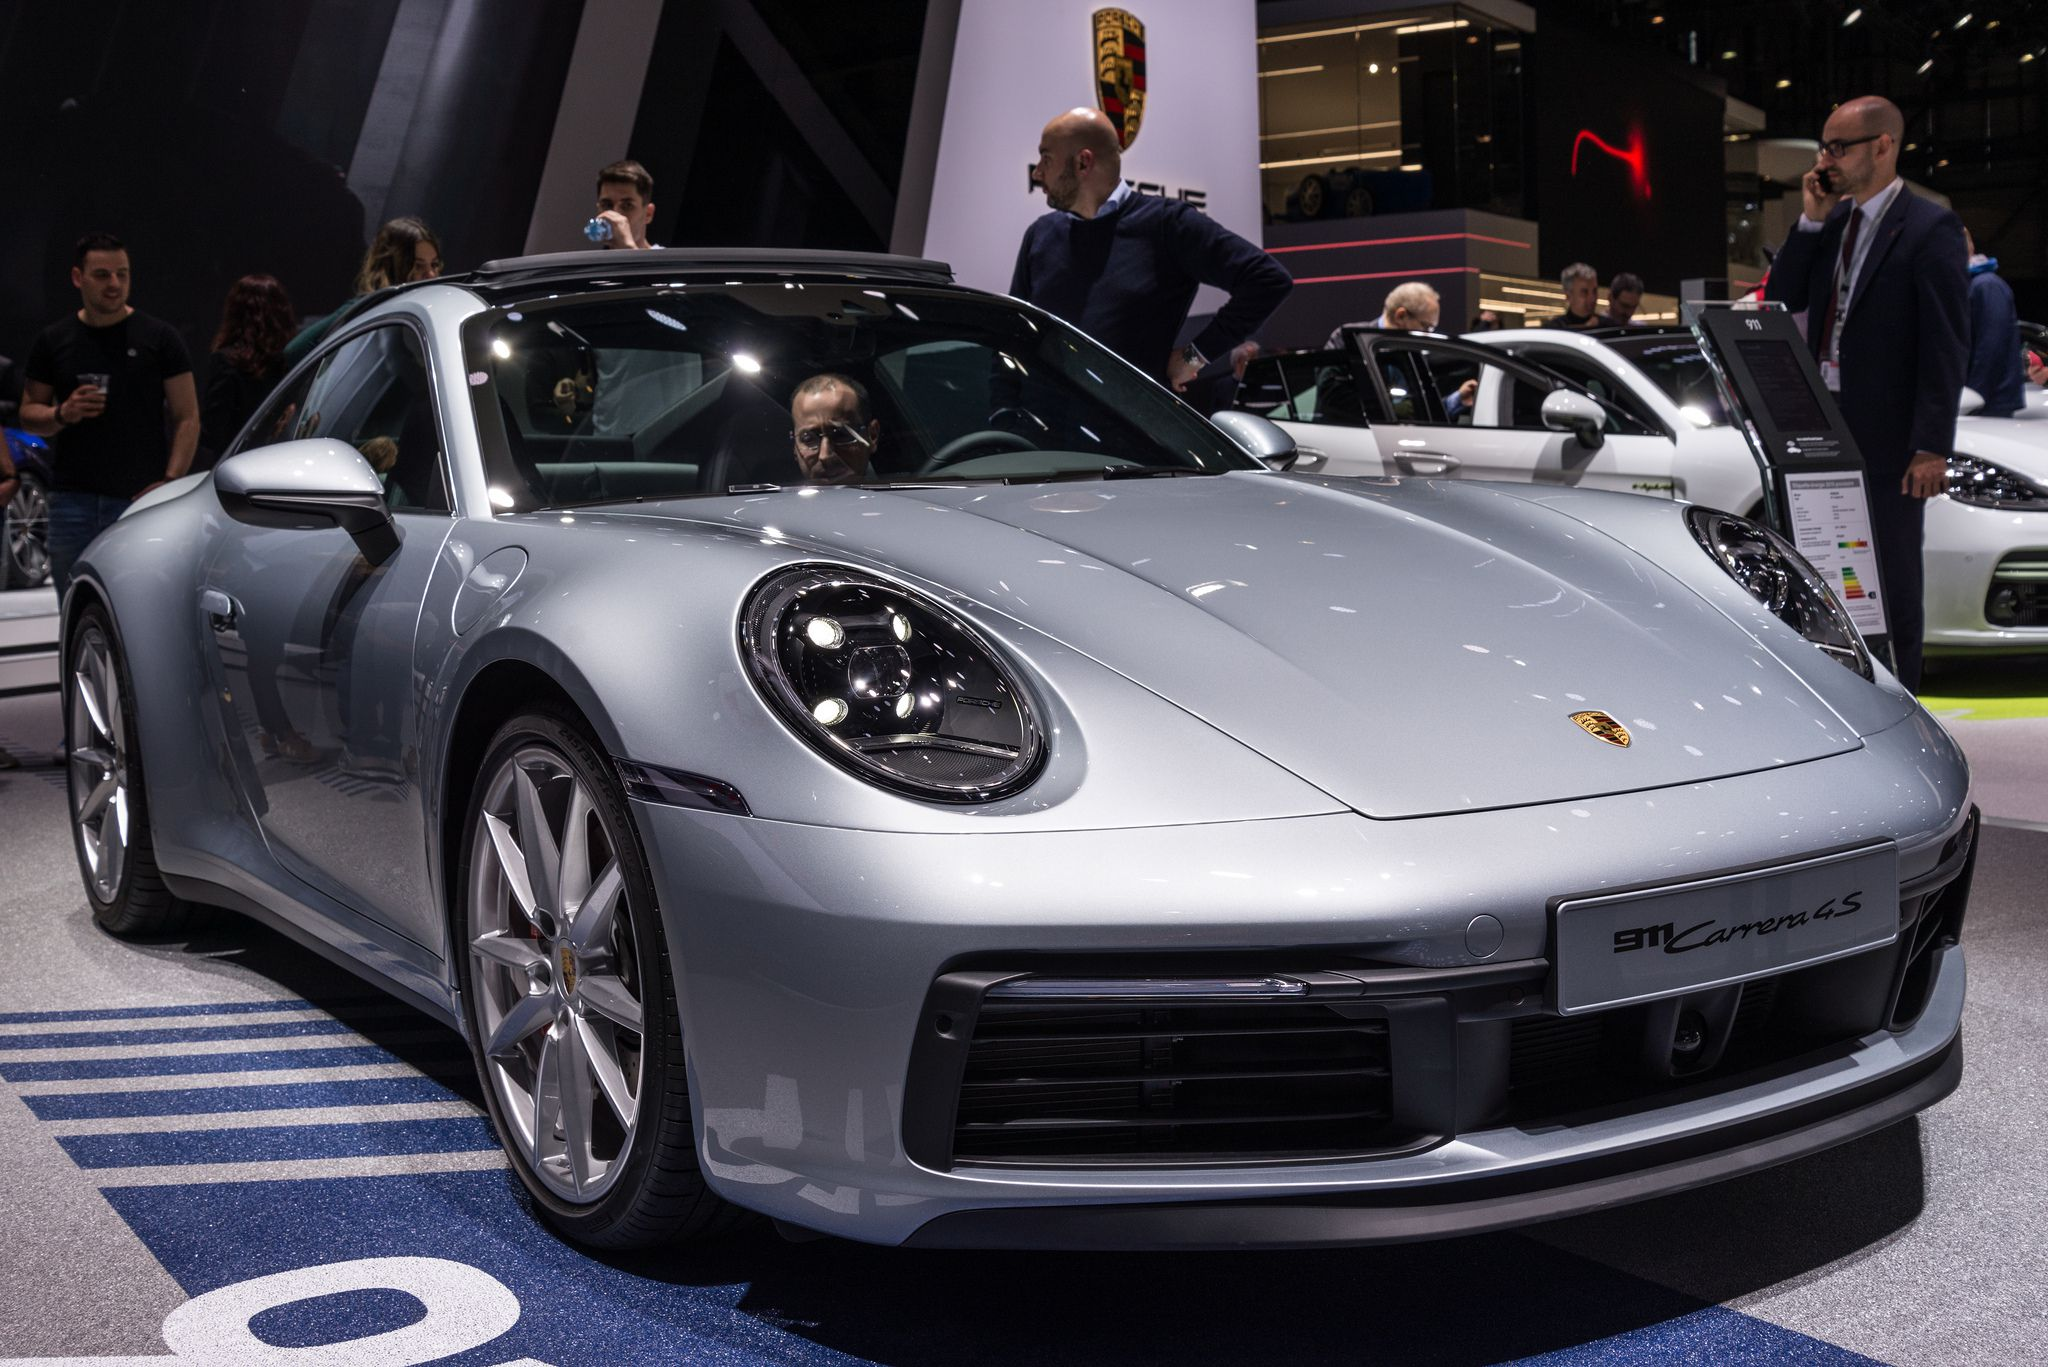 Porsche 911 Carrera 4S 2019 model, premiere at Geneva